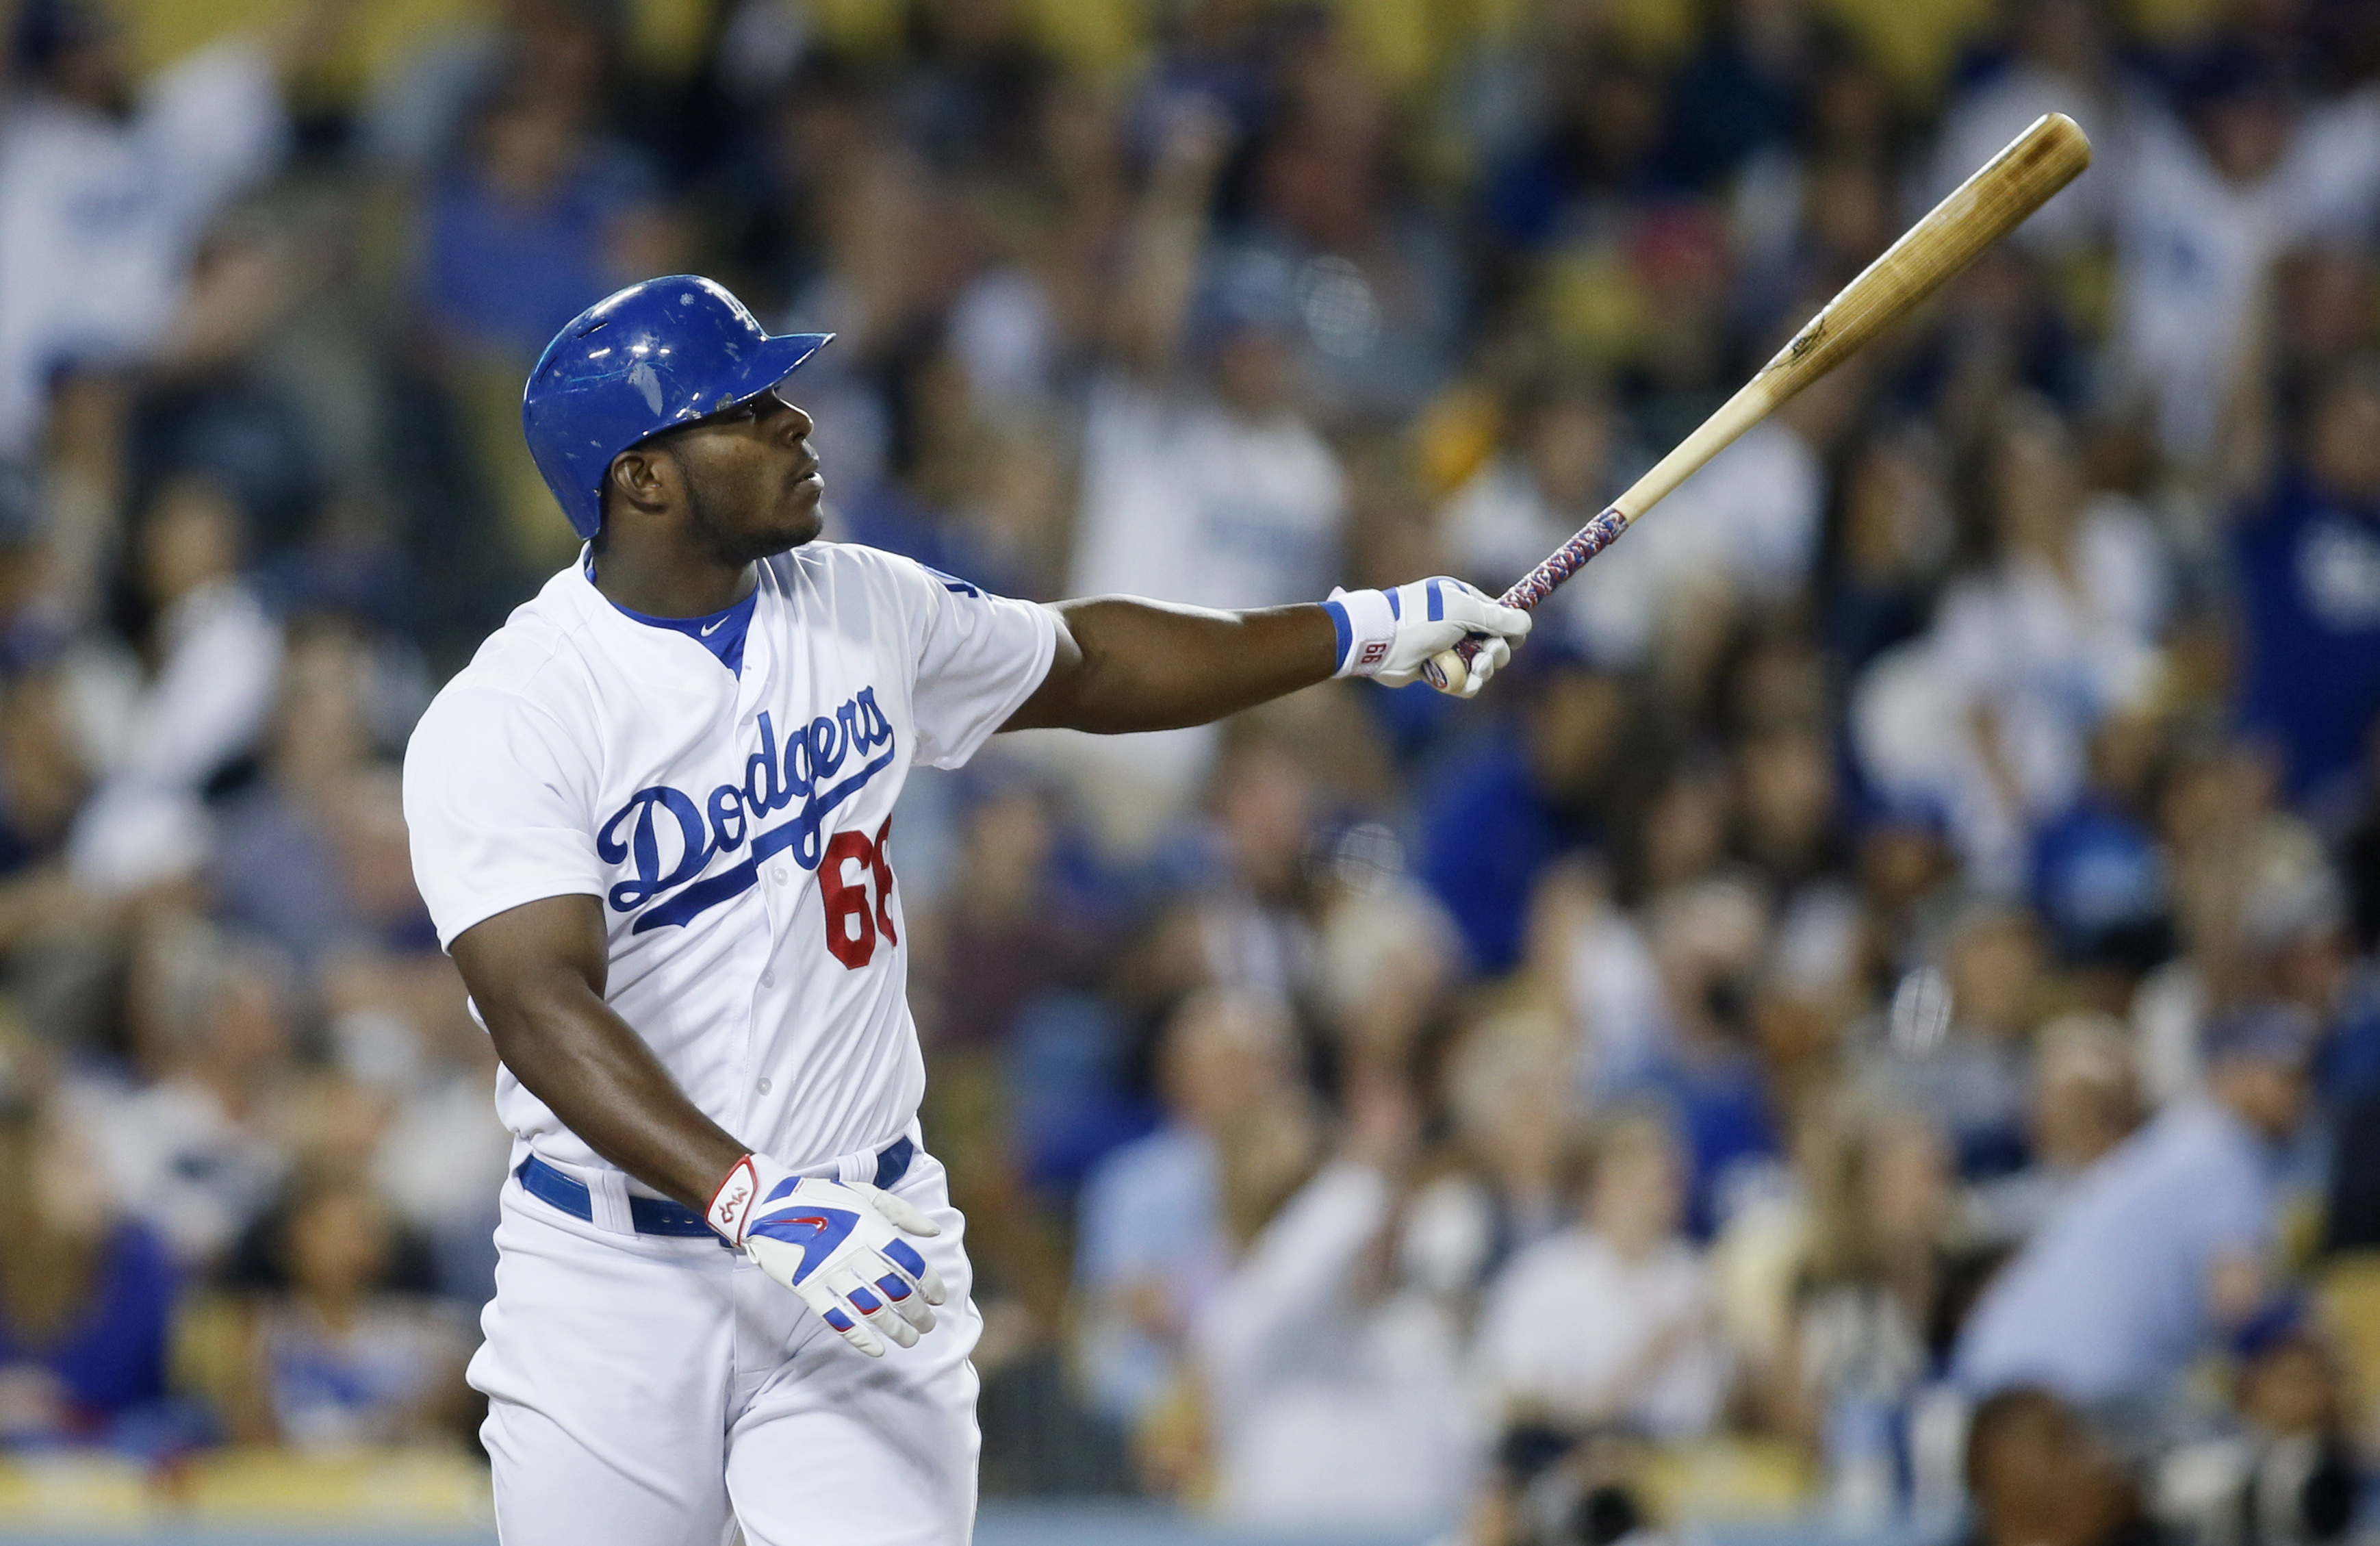 Los Angeles Dodgers' Yasiel Puig watches his two-run home run, driving Andre Ethier, against the Washington Nationals during the fourth inning of a baseball game, Tuesday, Aug. 11, 2015, in Los Angeles. (AP Photo/Danny Moloshok)